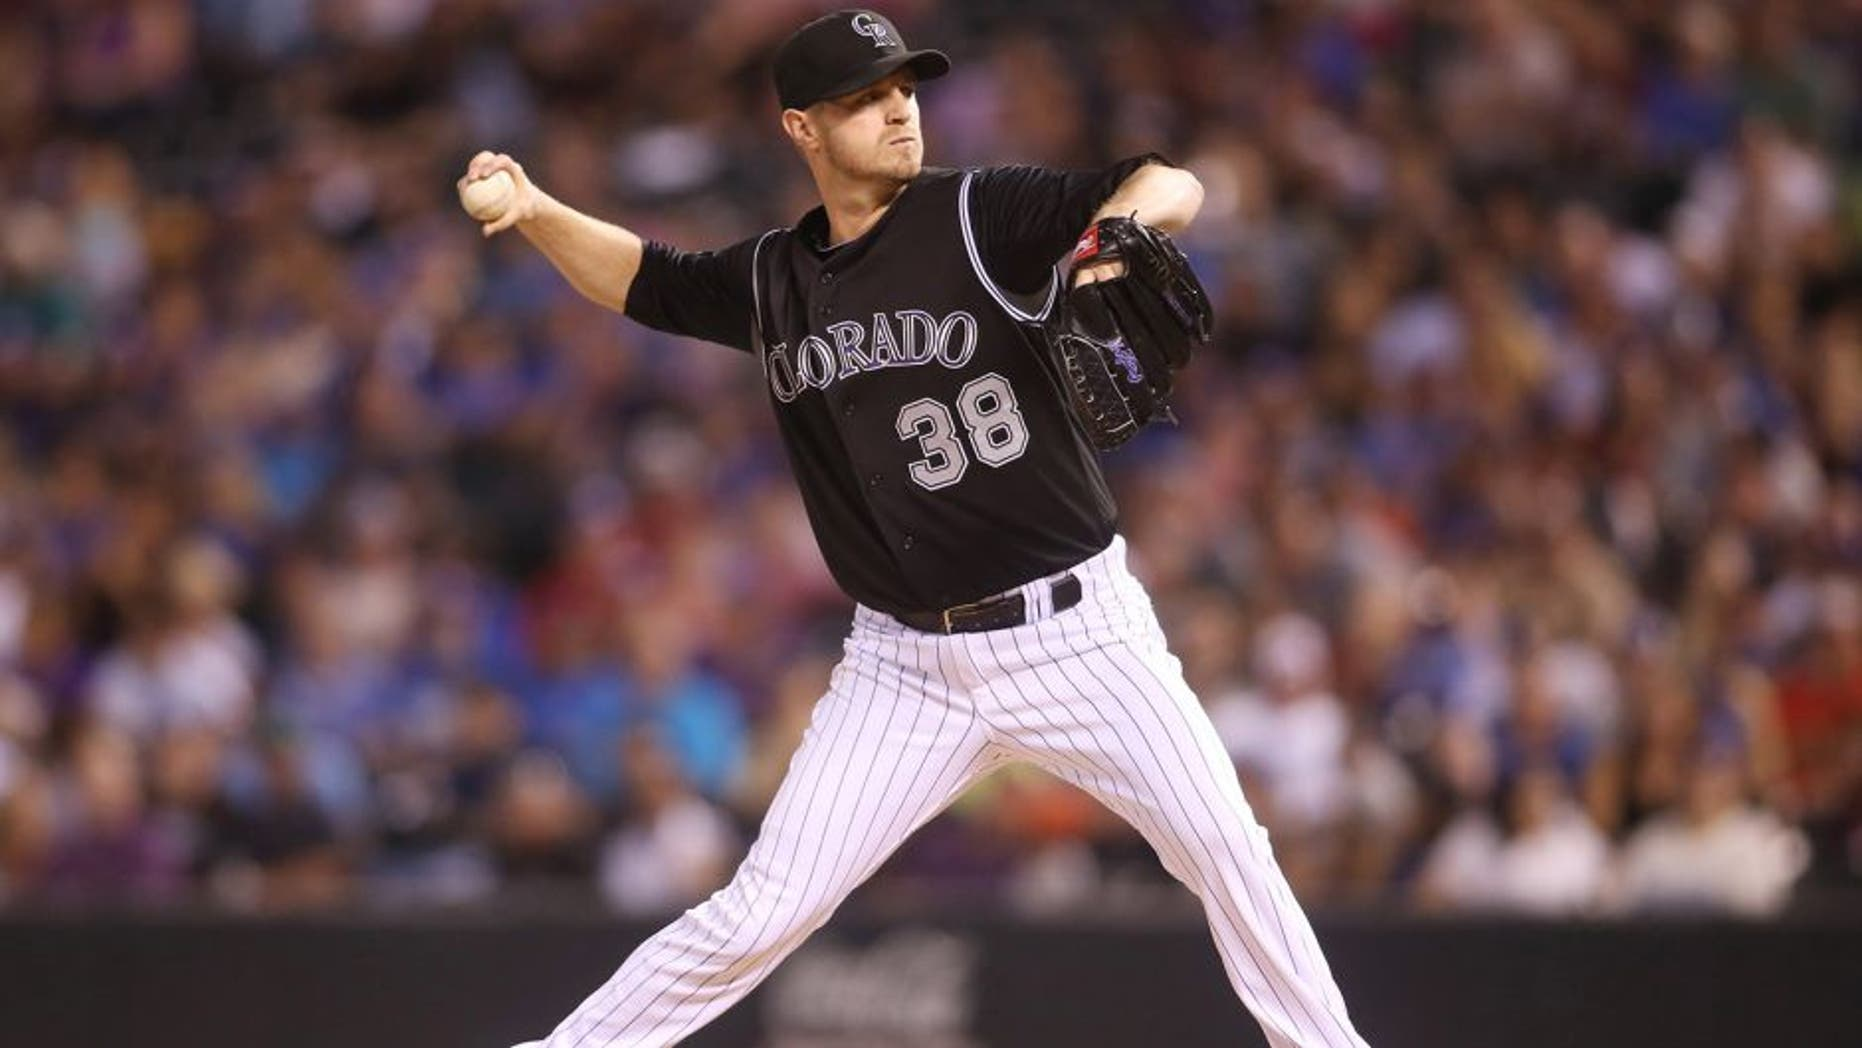 Sep 26, 2015; Denver, CO, USA; Colorado Rockies starting pitcher Kyle Kendrick (38) delivers a pitch during the fourth inning against the Los Angeles Dodgers at Coors Field. The Rockies won 8-6. Mandatory Credit: Chris Humphreys-USA TODAY Sports